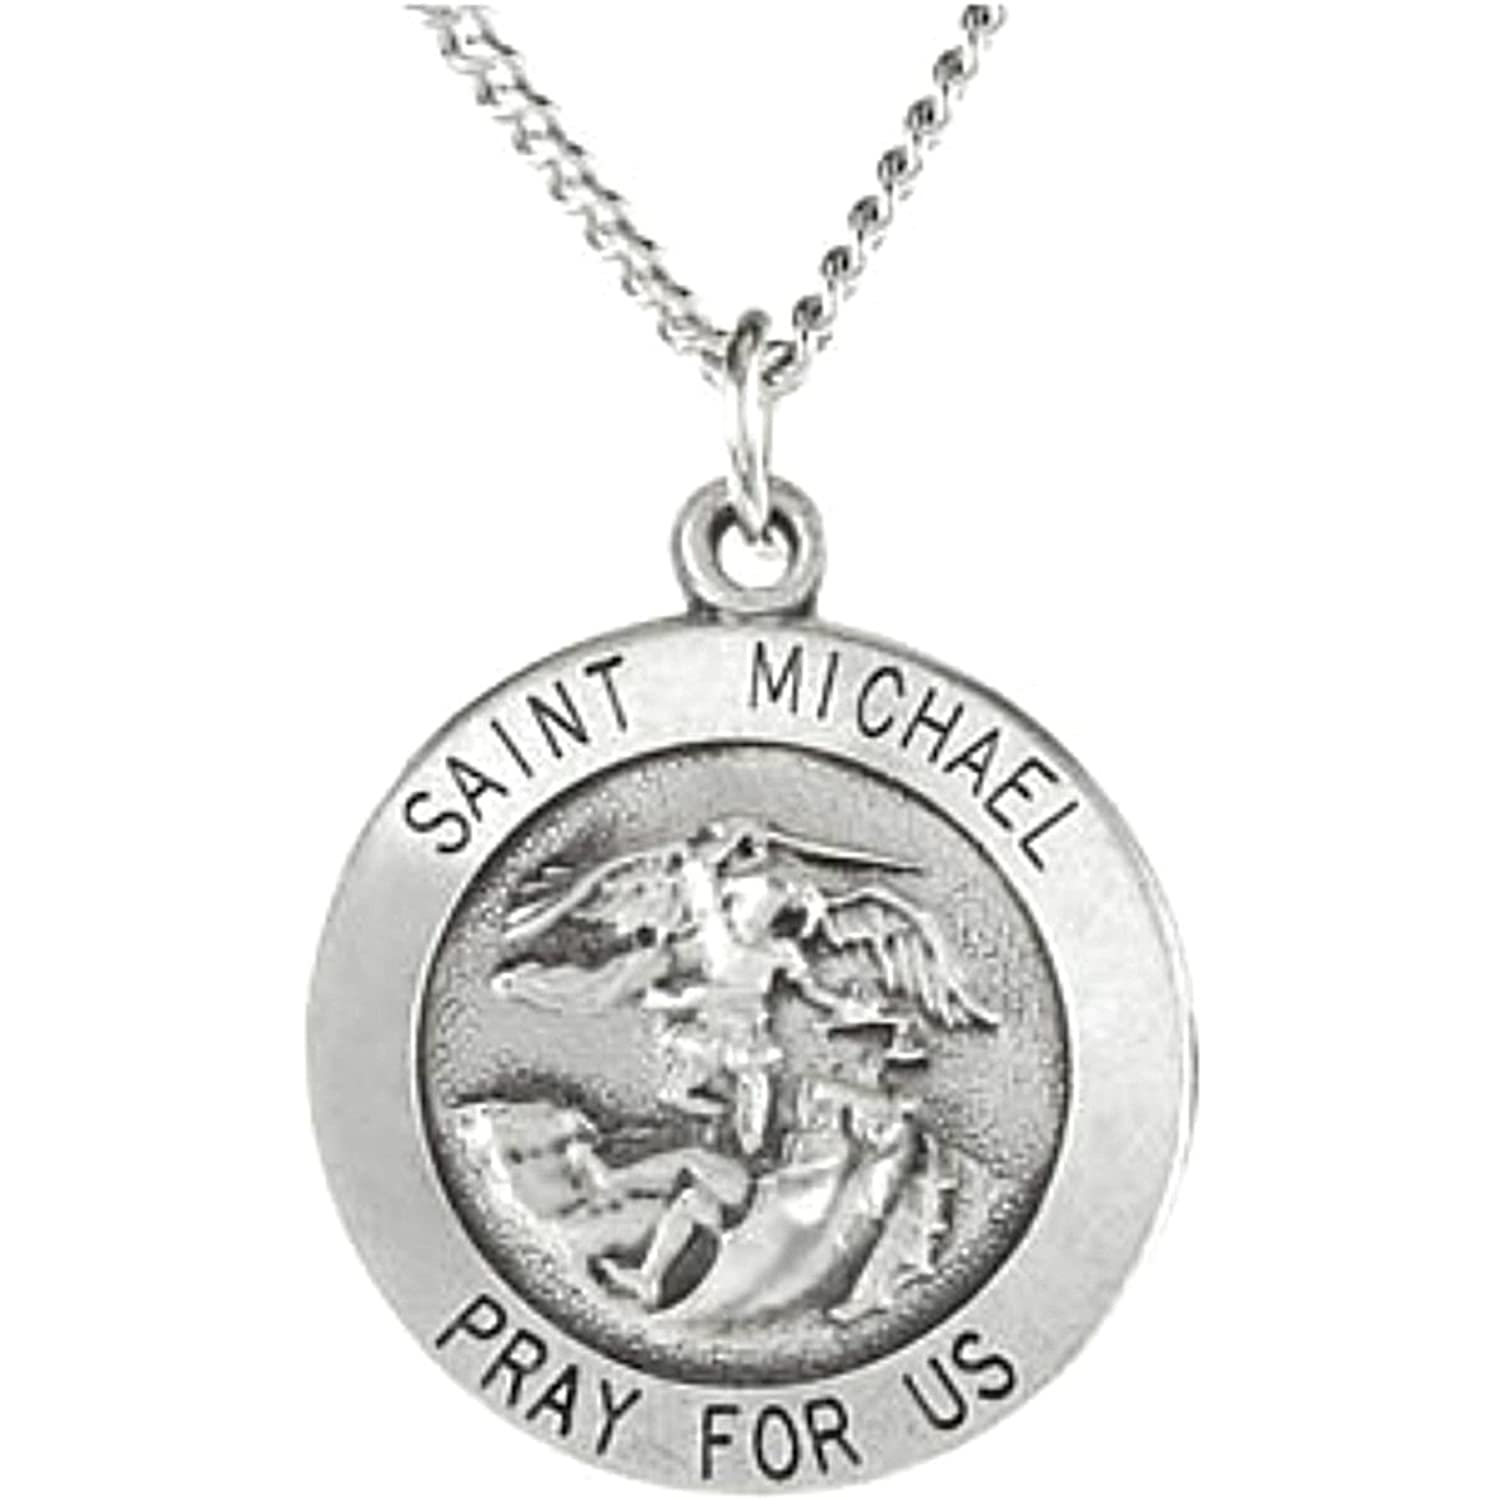 Amazon sterling silver st michael medal necklace 18 15 mm amazon sterling silver st michael medal necklace 18 15 mm the mens jewelry store private collection jewelry aloadofball Images